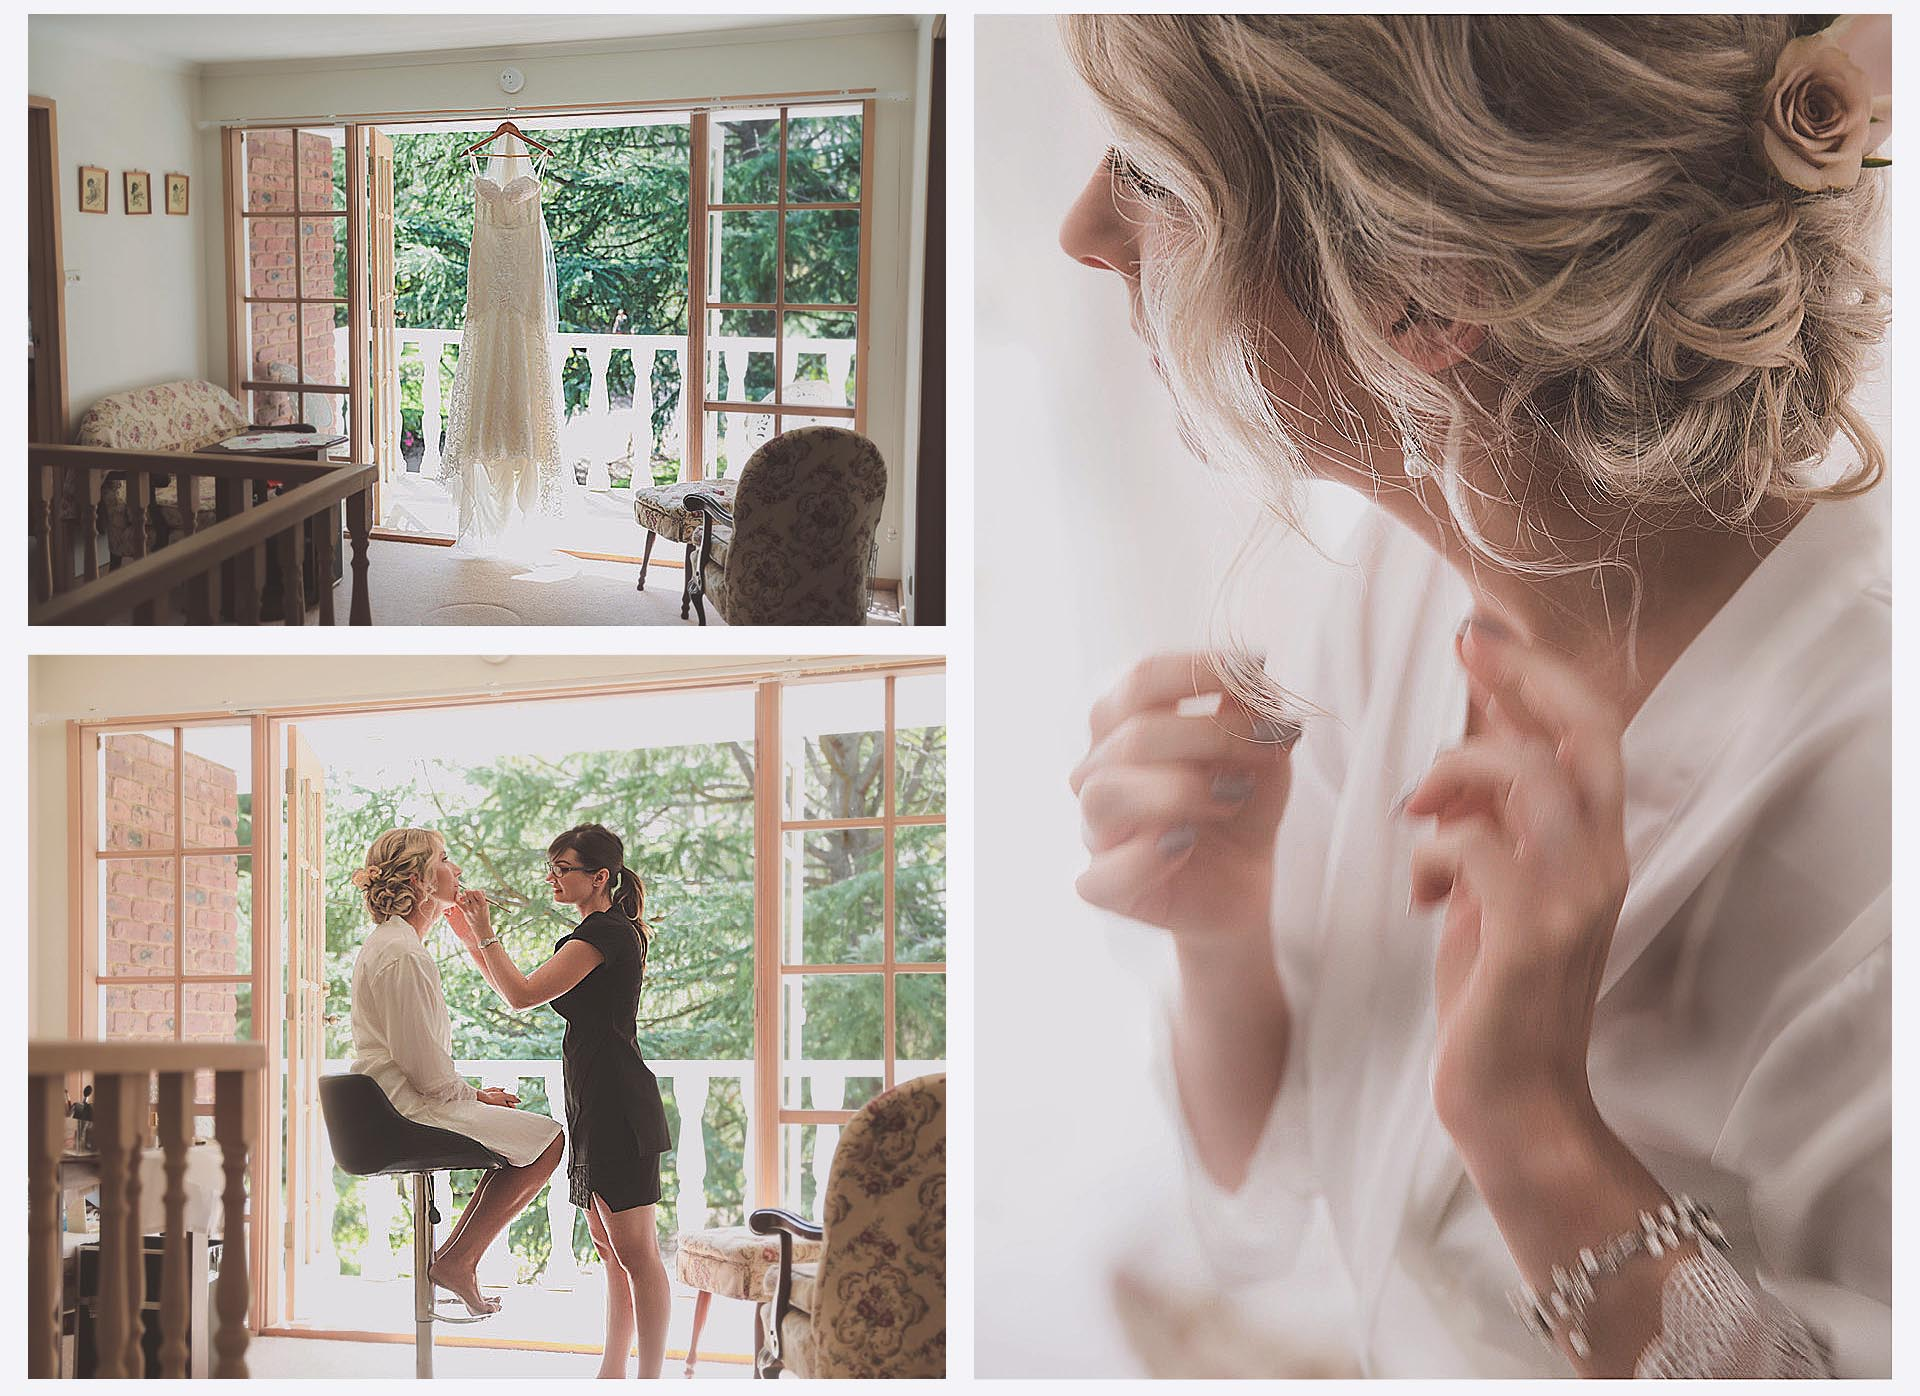 Makeup artist and stylist prepare for the bride before the wedding